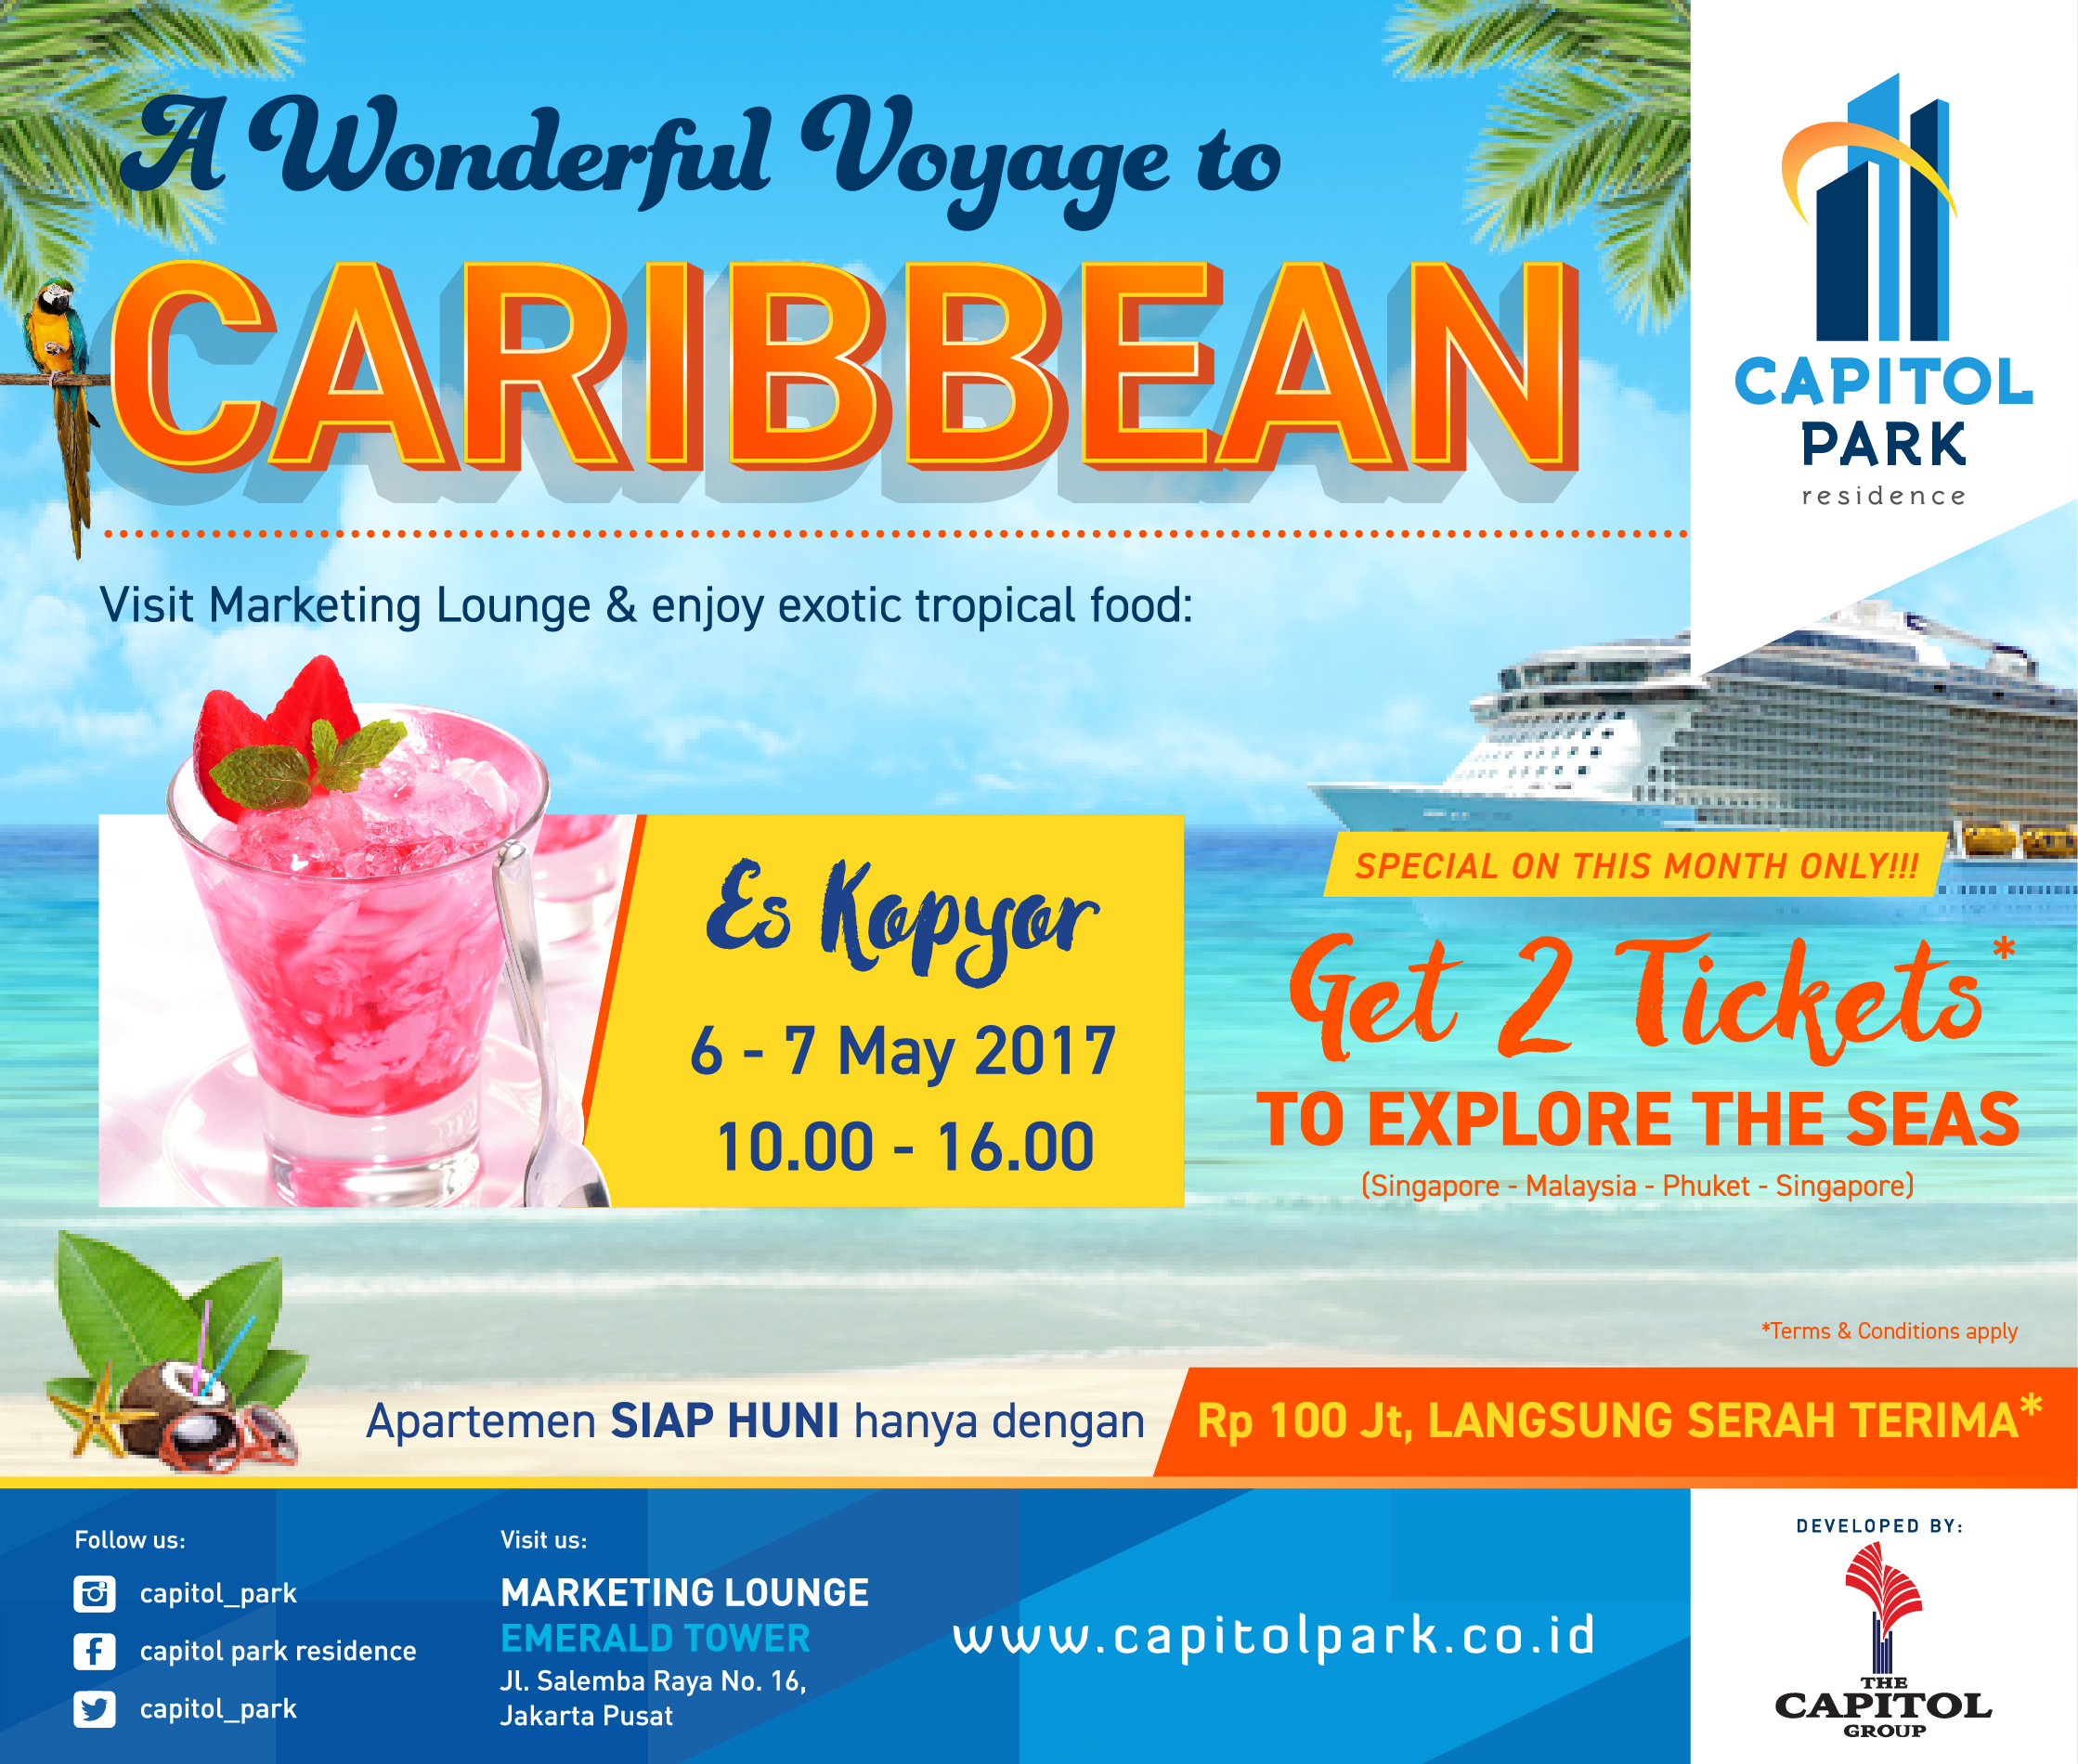 Capitol Park News - A Wonderful Voyage to Caribbean